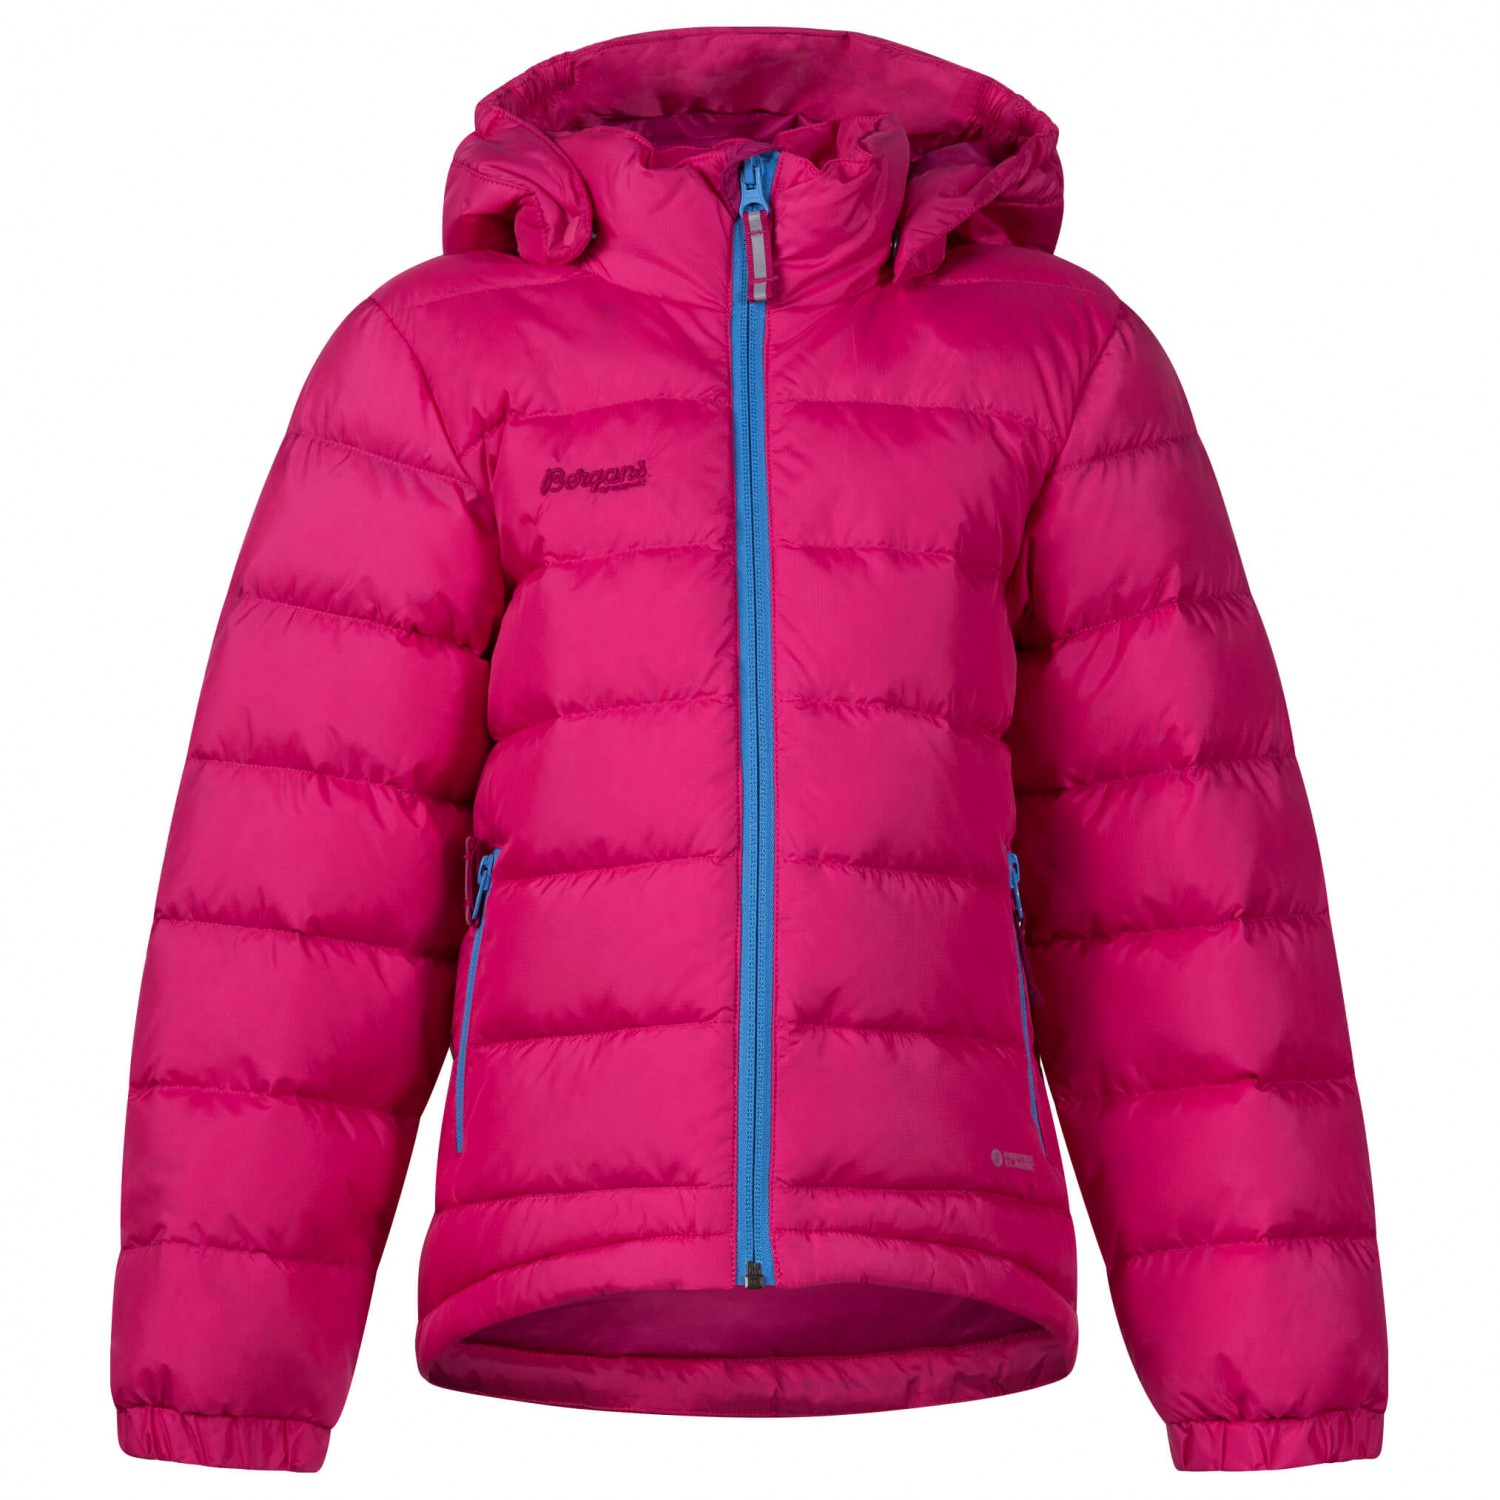 bergans down jacket dunjakke barn kj p online. Black Bedroom Furniture Sets. Home Design Ideas